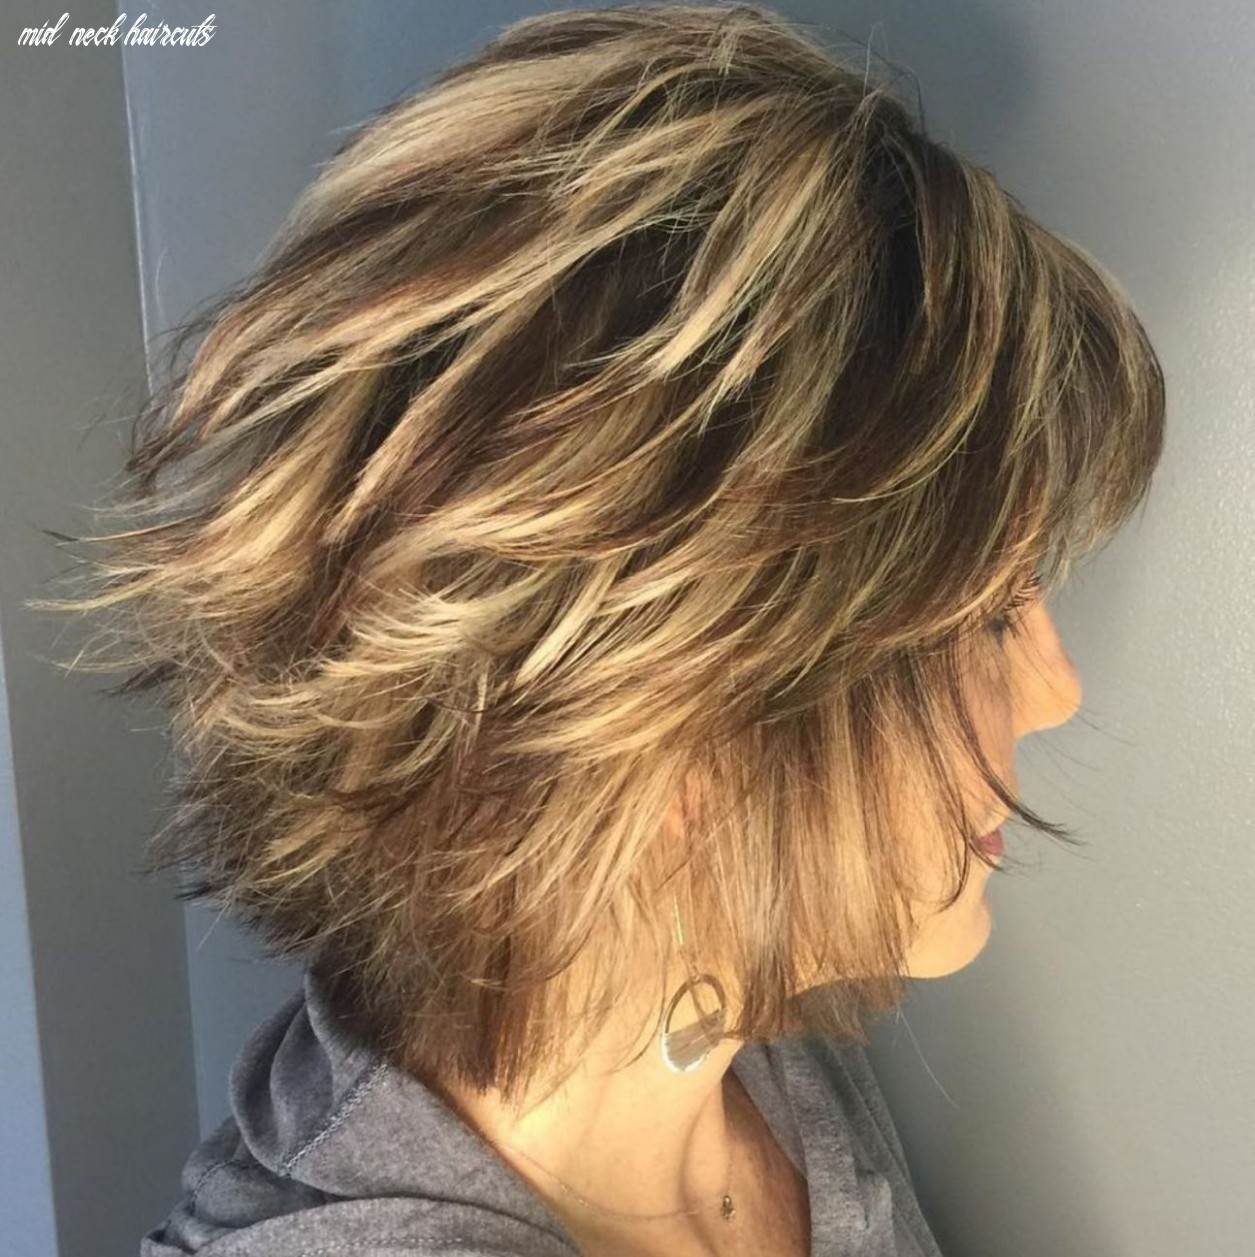 10 best modern hairstyles and haircuts for women over 10 | modern